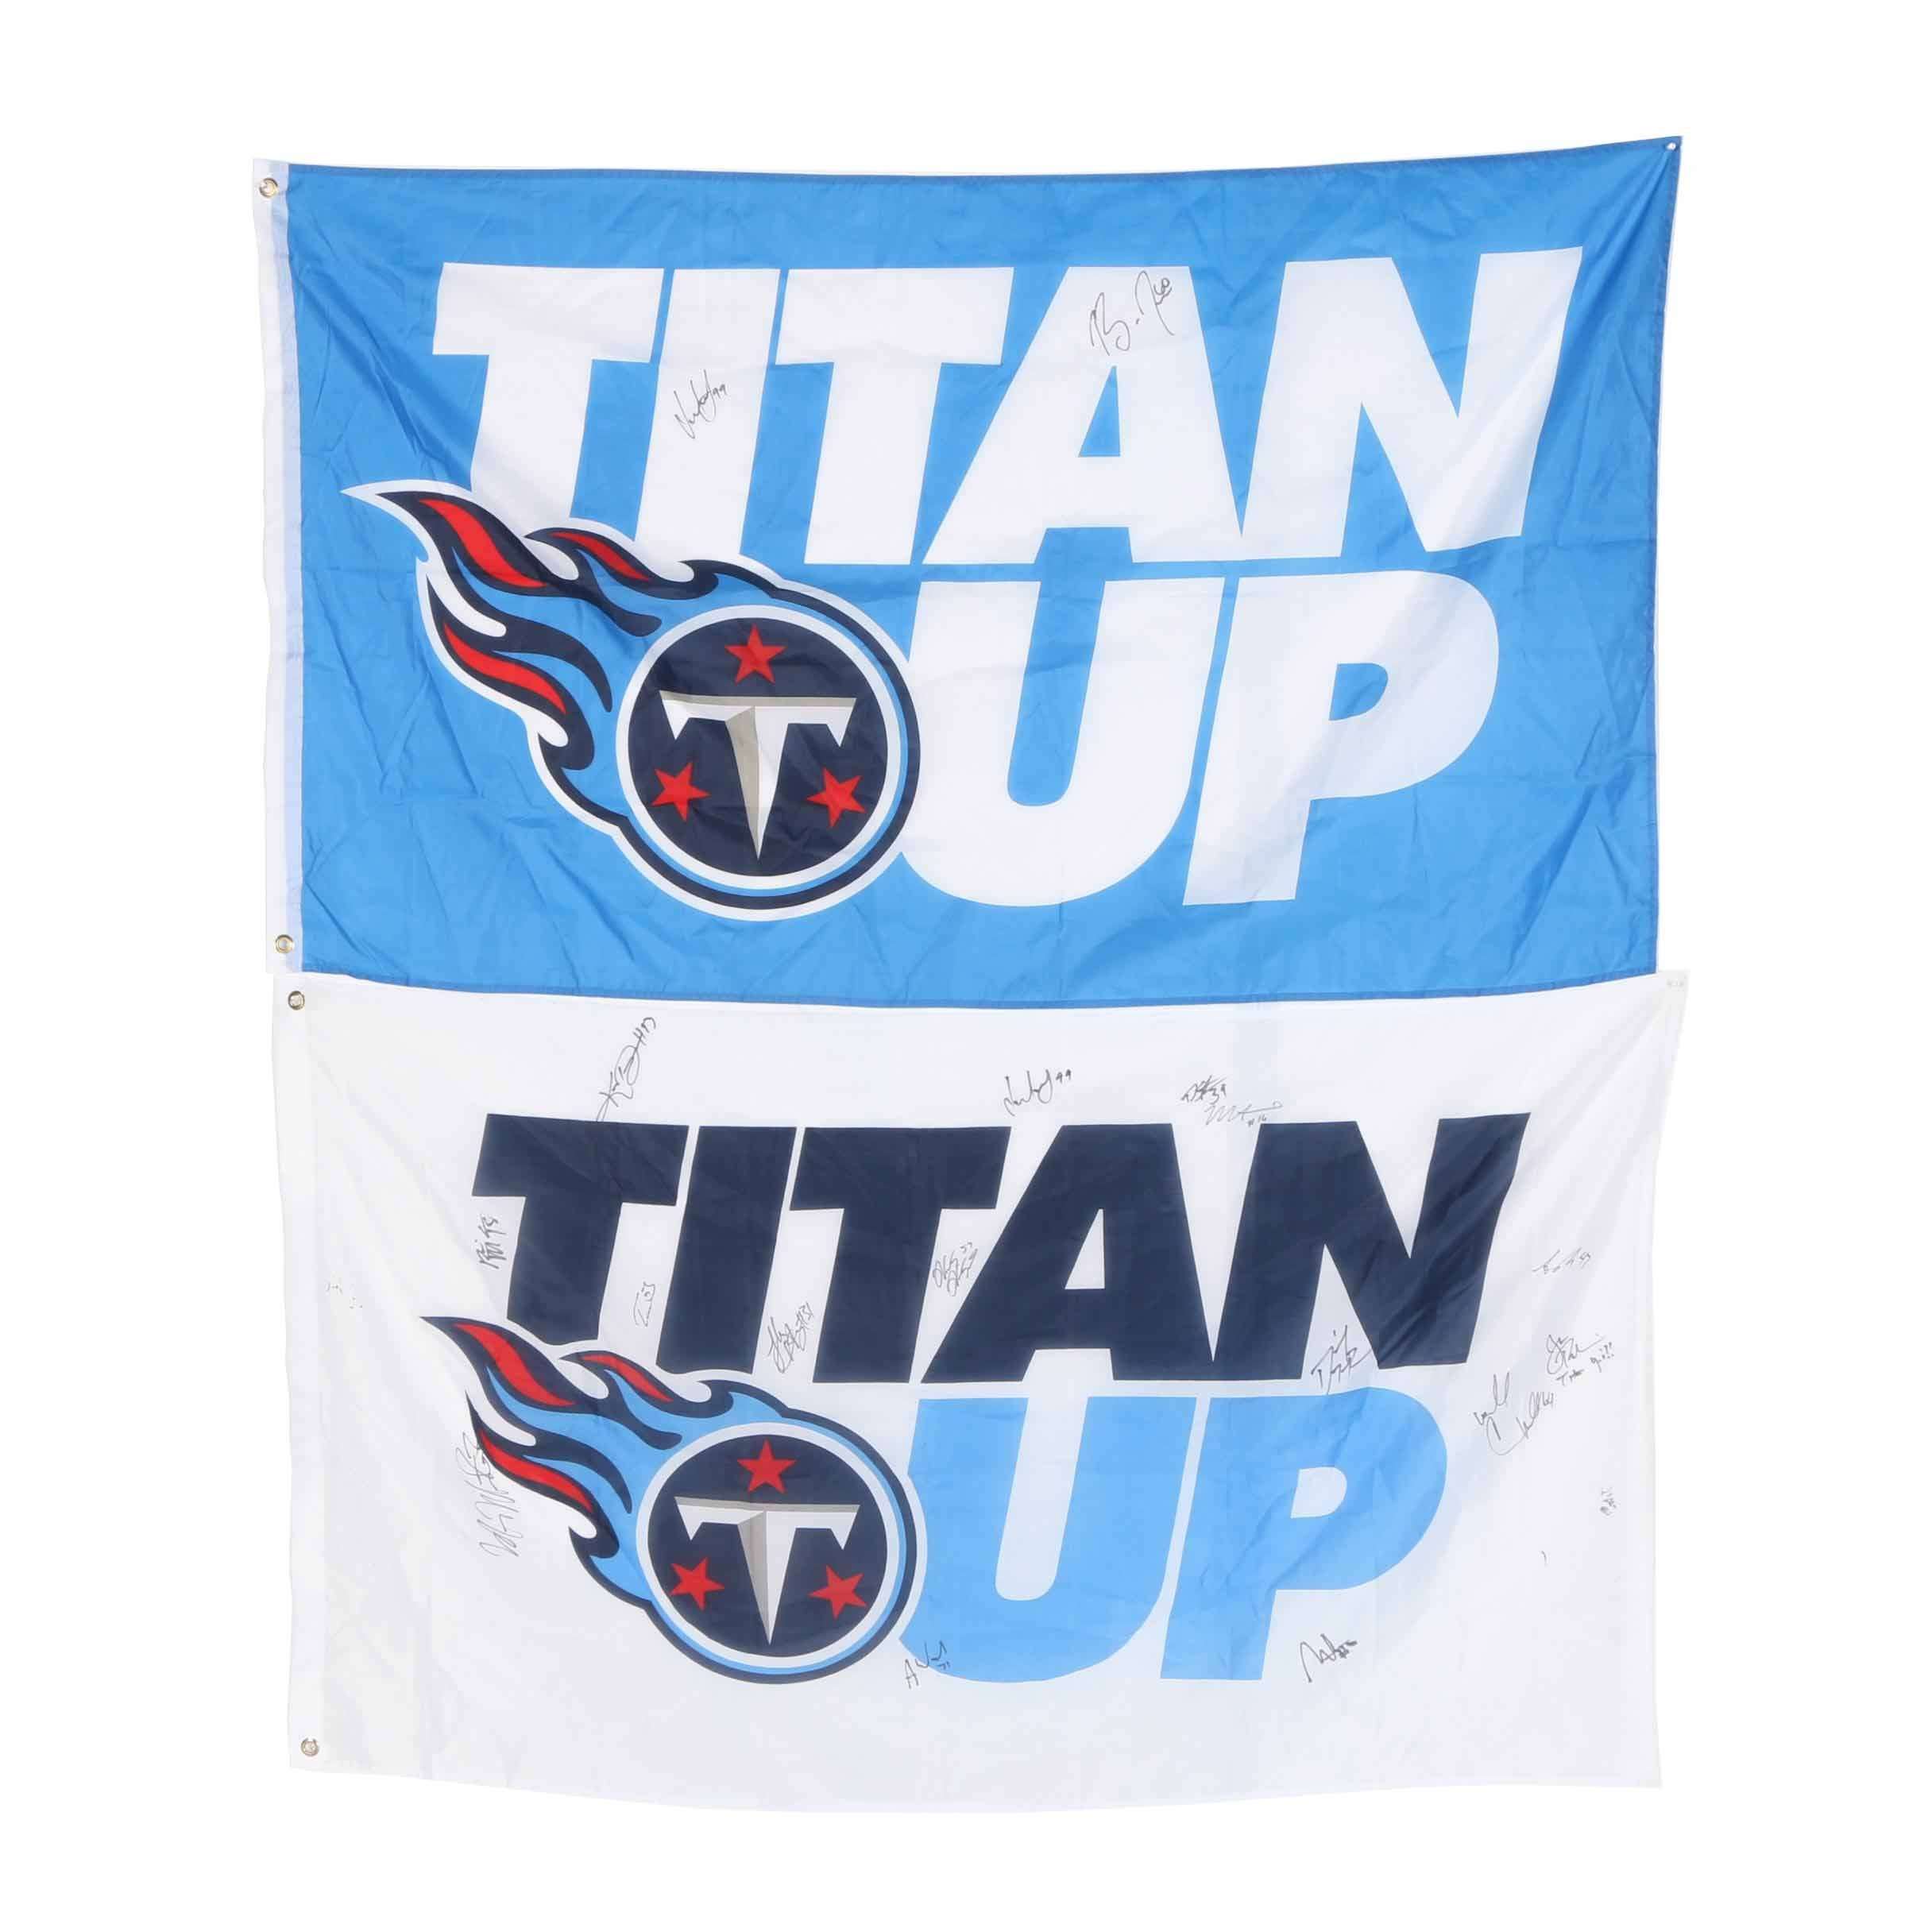 Signed Tennessee Titans Flags